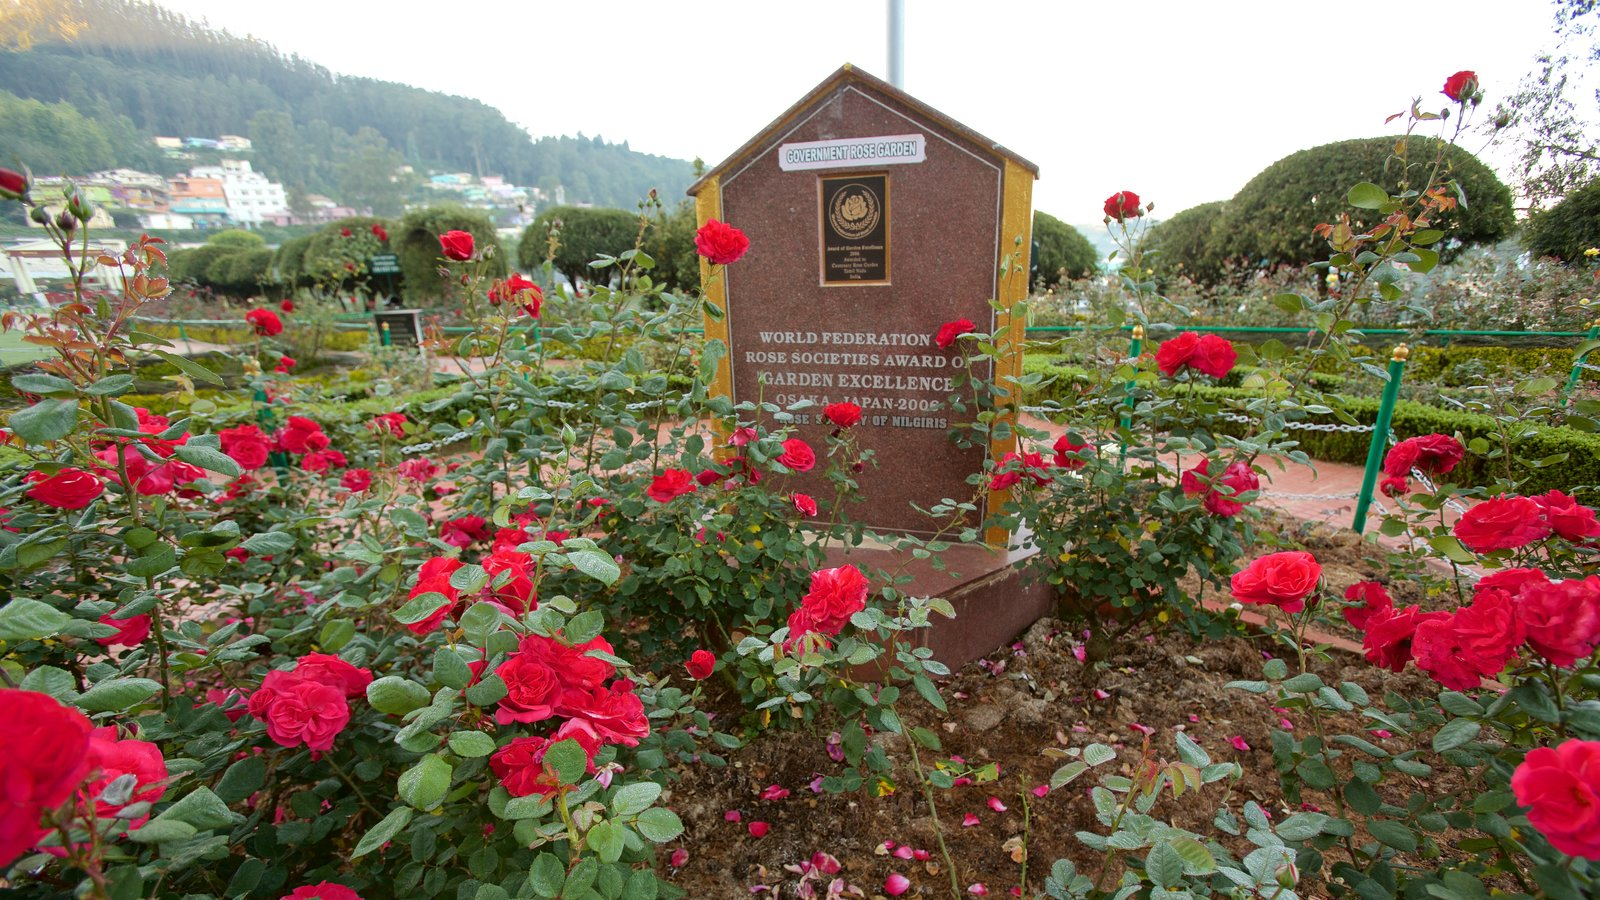 Ooty Rose Garden pictures: View photos and images of Ooty Rose Garden